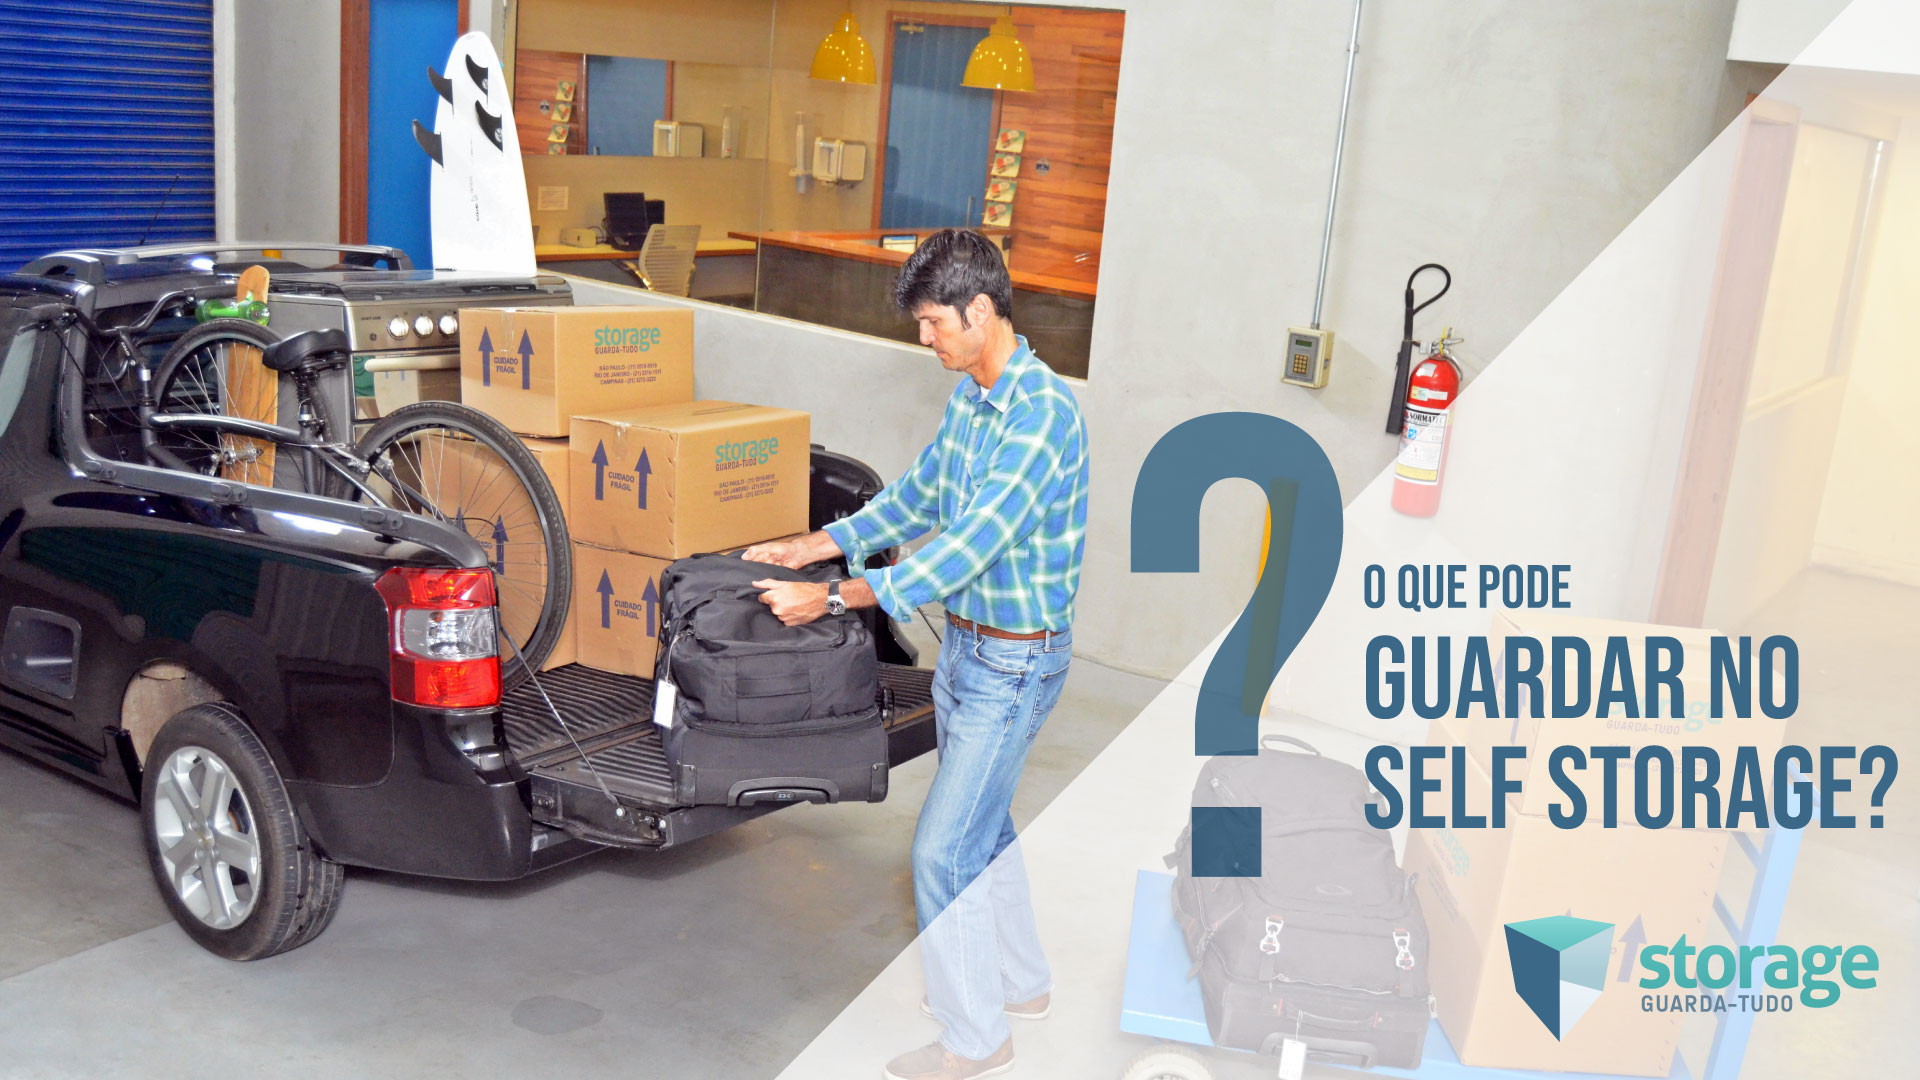 O-que-pode-guardar-no-self-storage